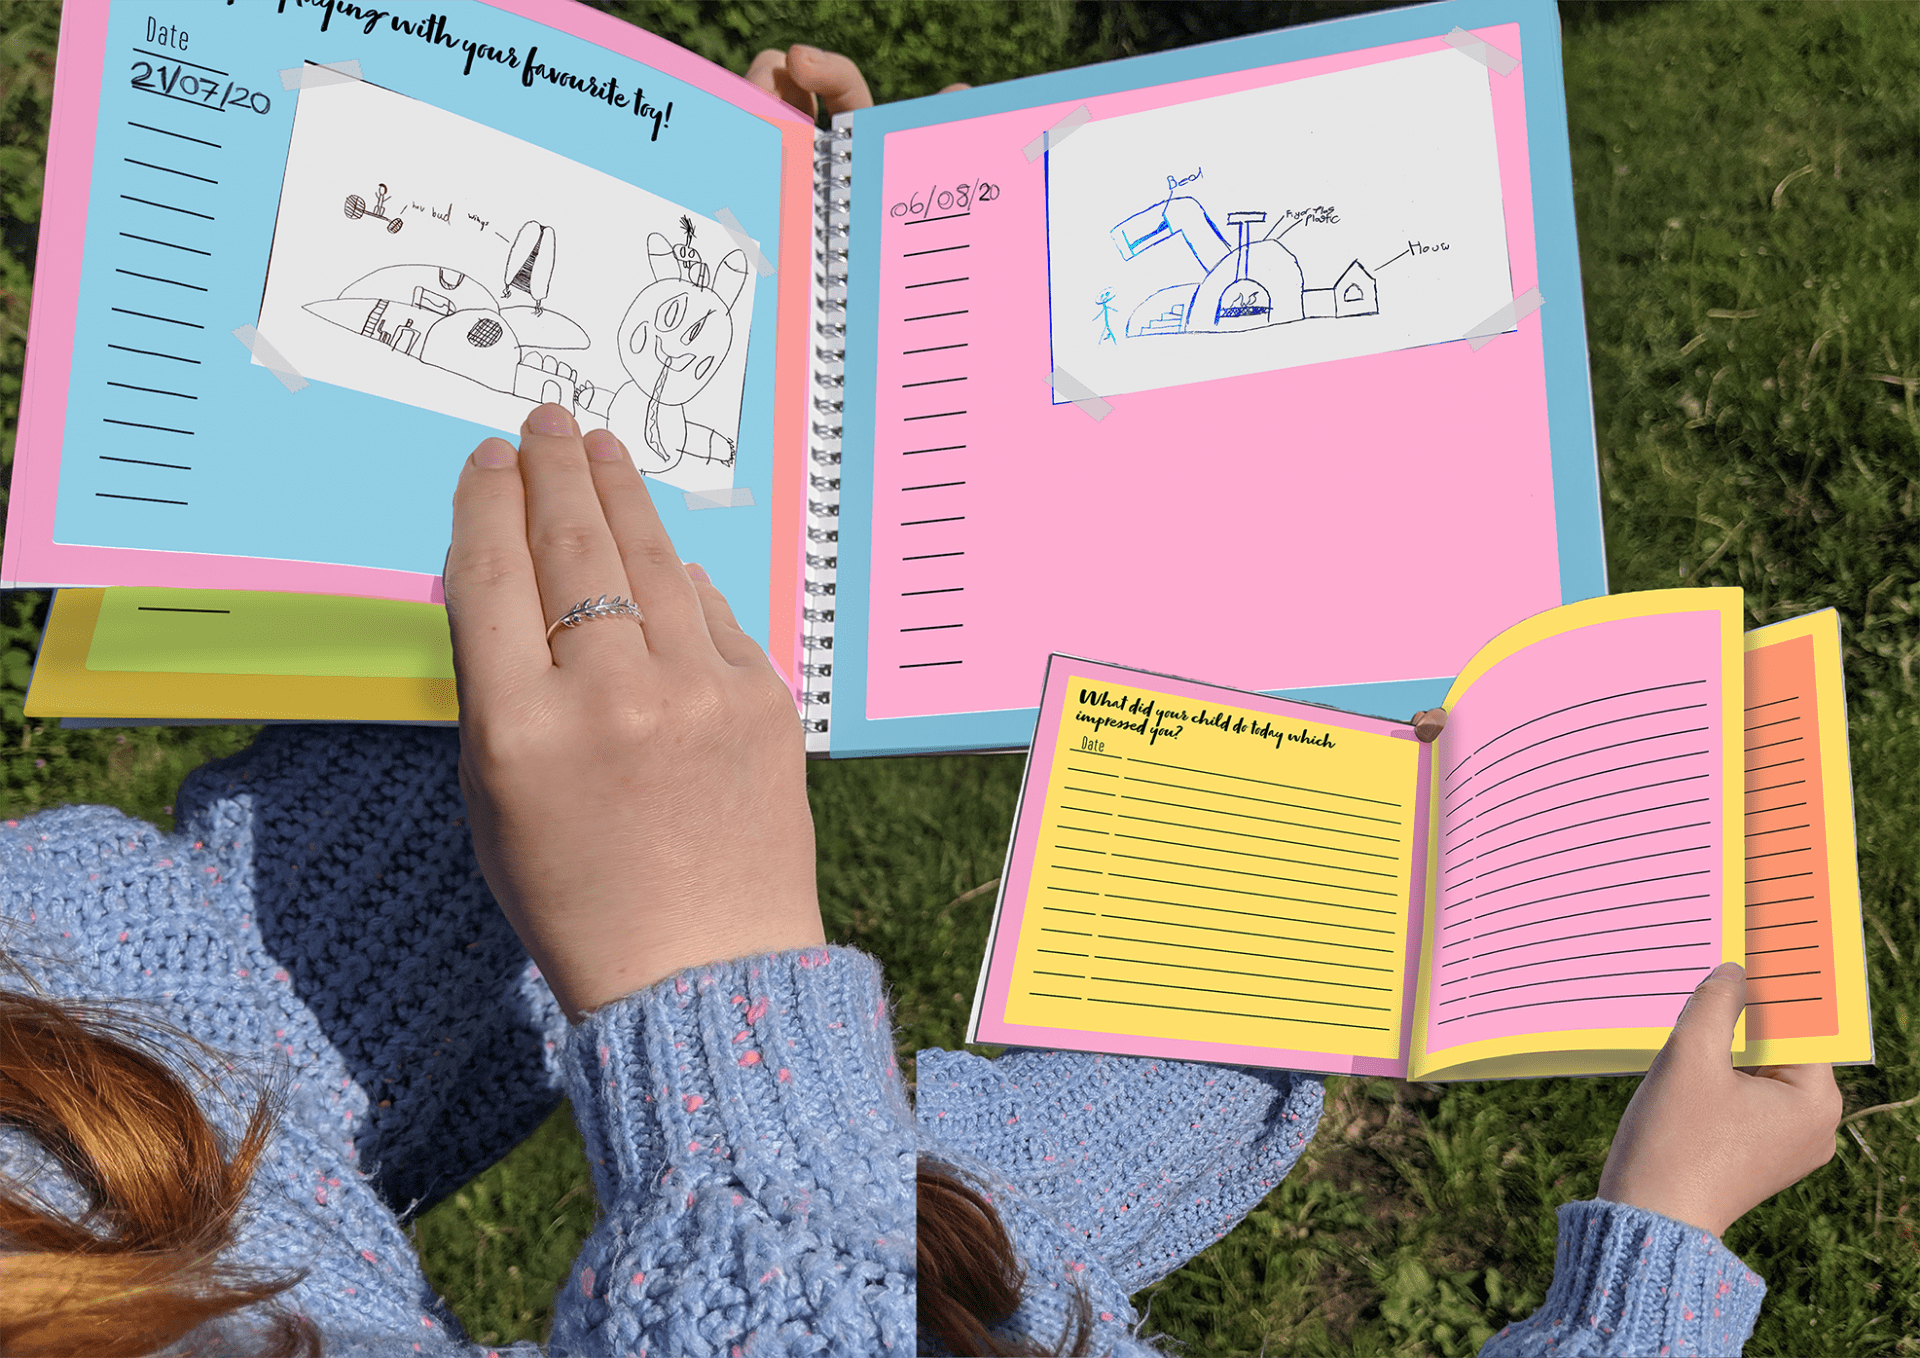 Someone holding a brightly coloured book - to preserve memories and ideas, there are several journal pages for both parents and children to write on with a different question or prompt on each page.